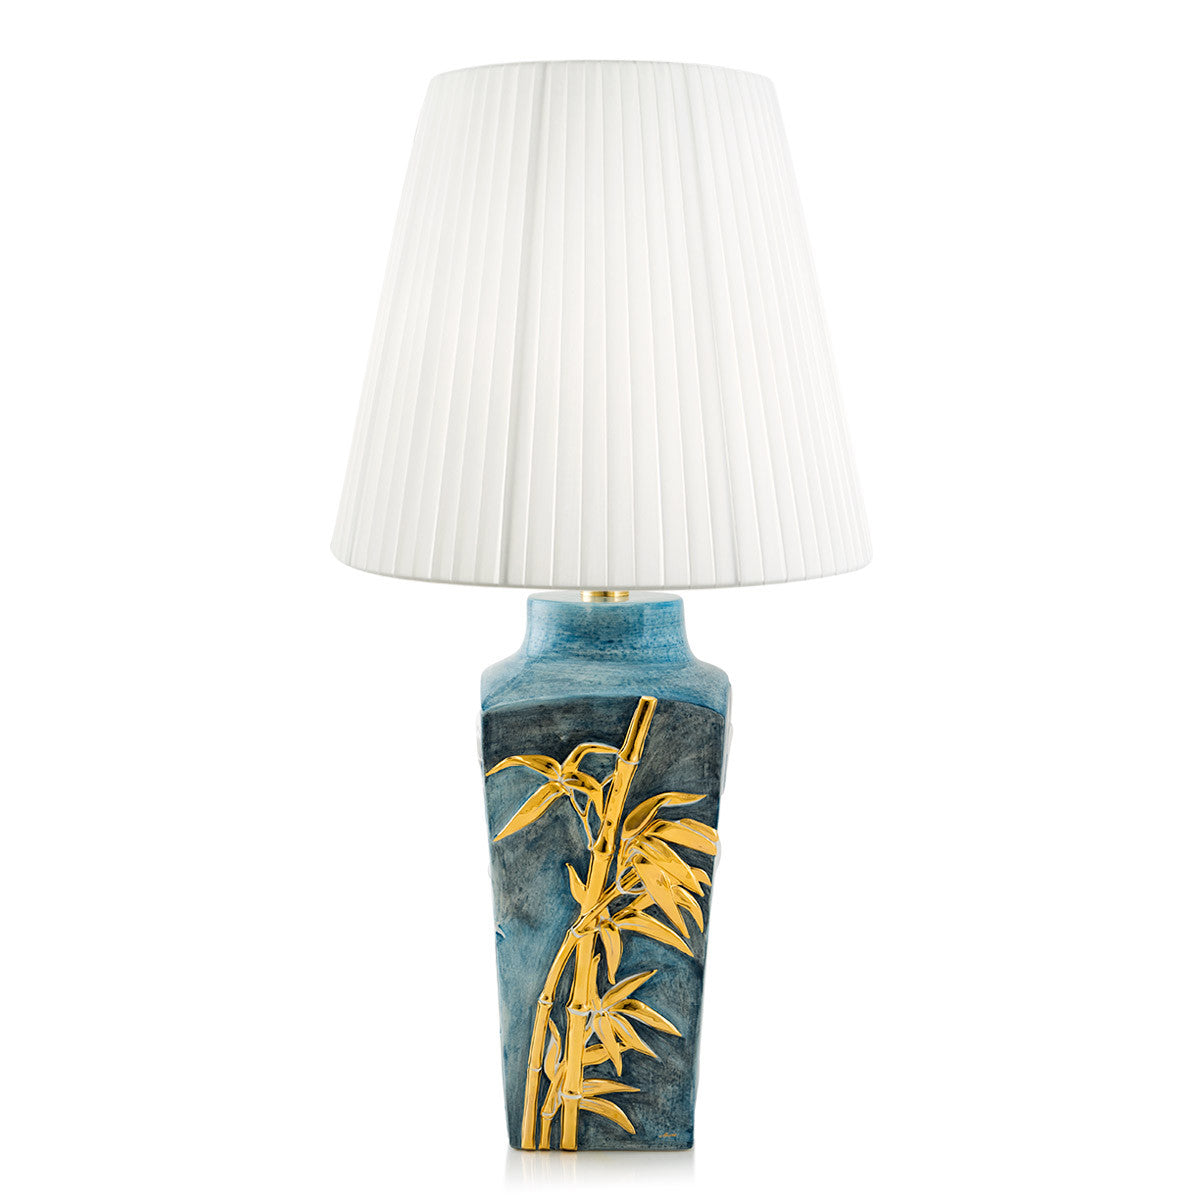 Bamboo Ceramic Table Lamp Light Blue Color, 24kt Gold